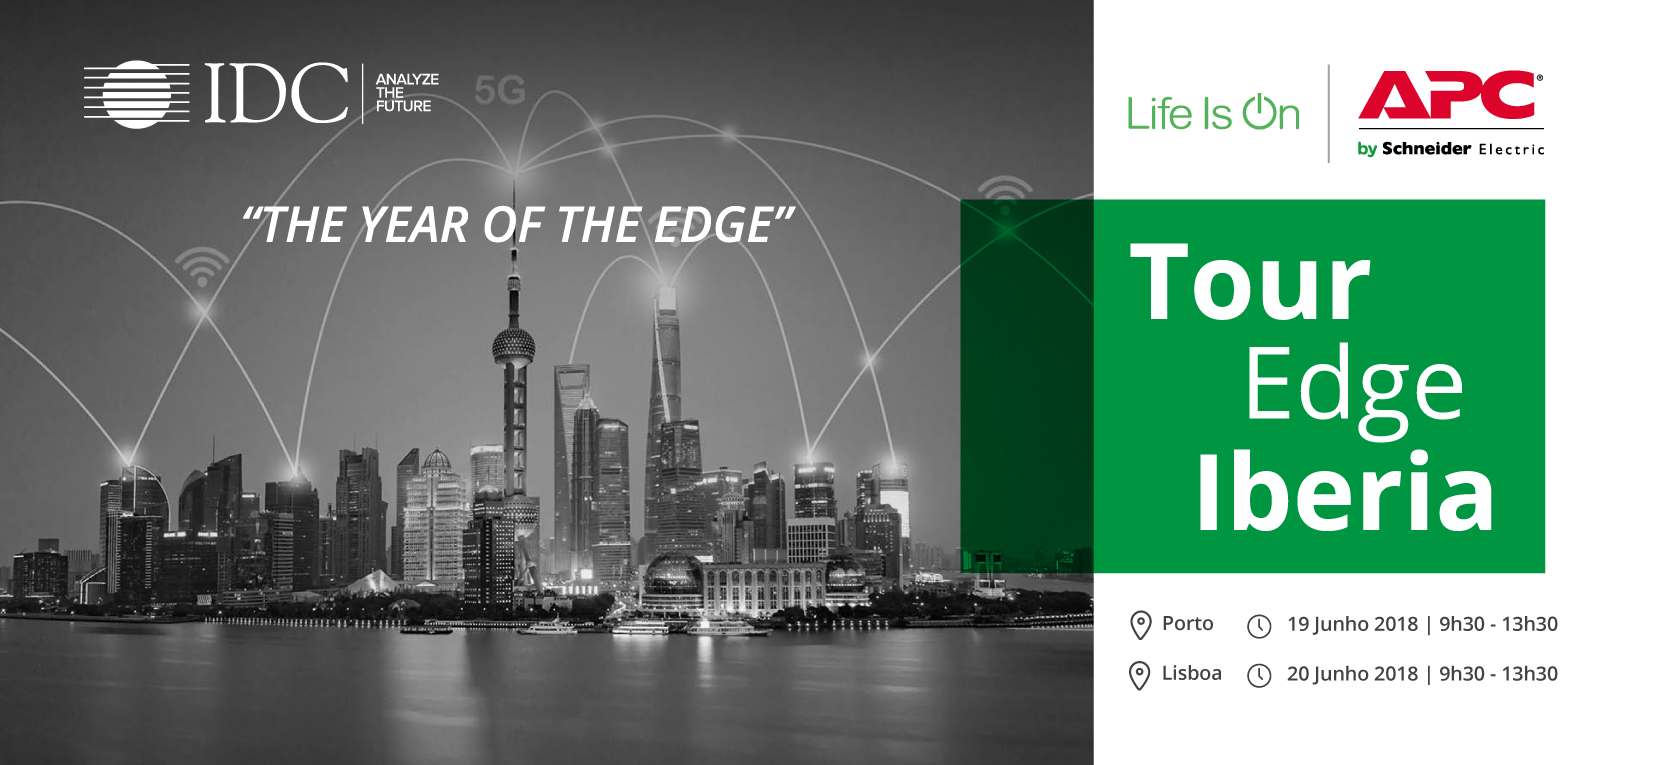 IDC e SCHNEIDER ELECTRIC | Tour Edge Iberia